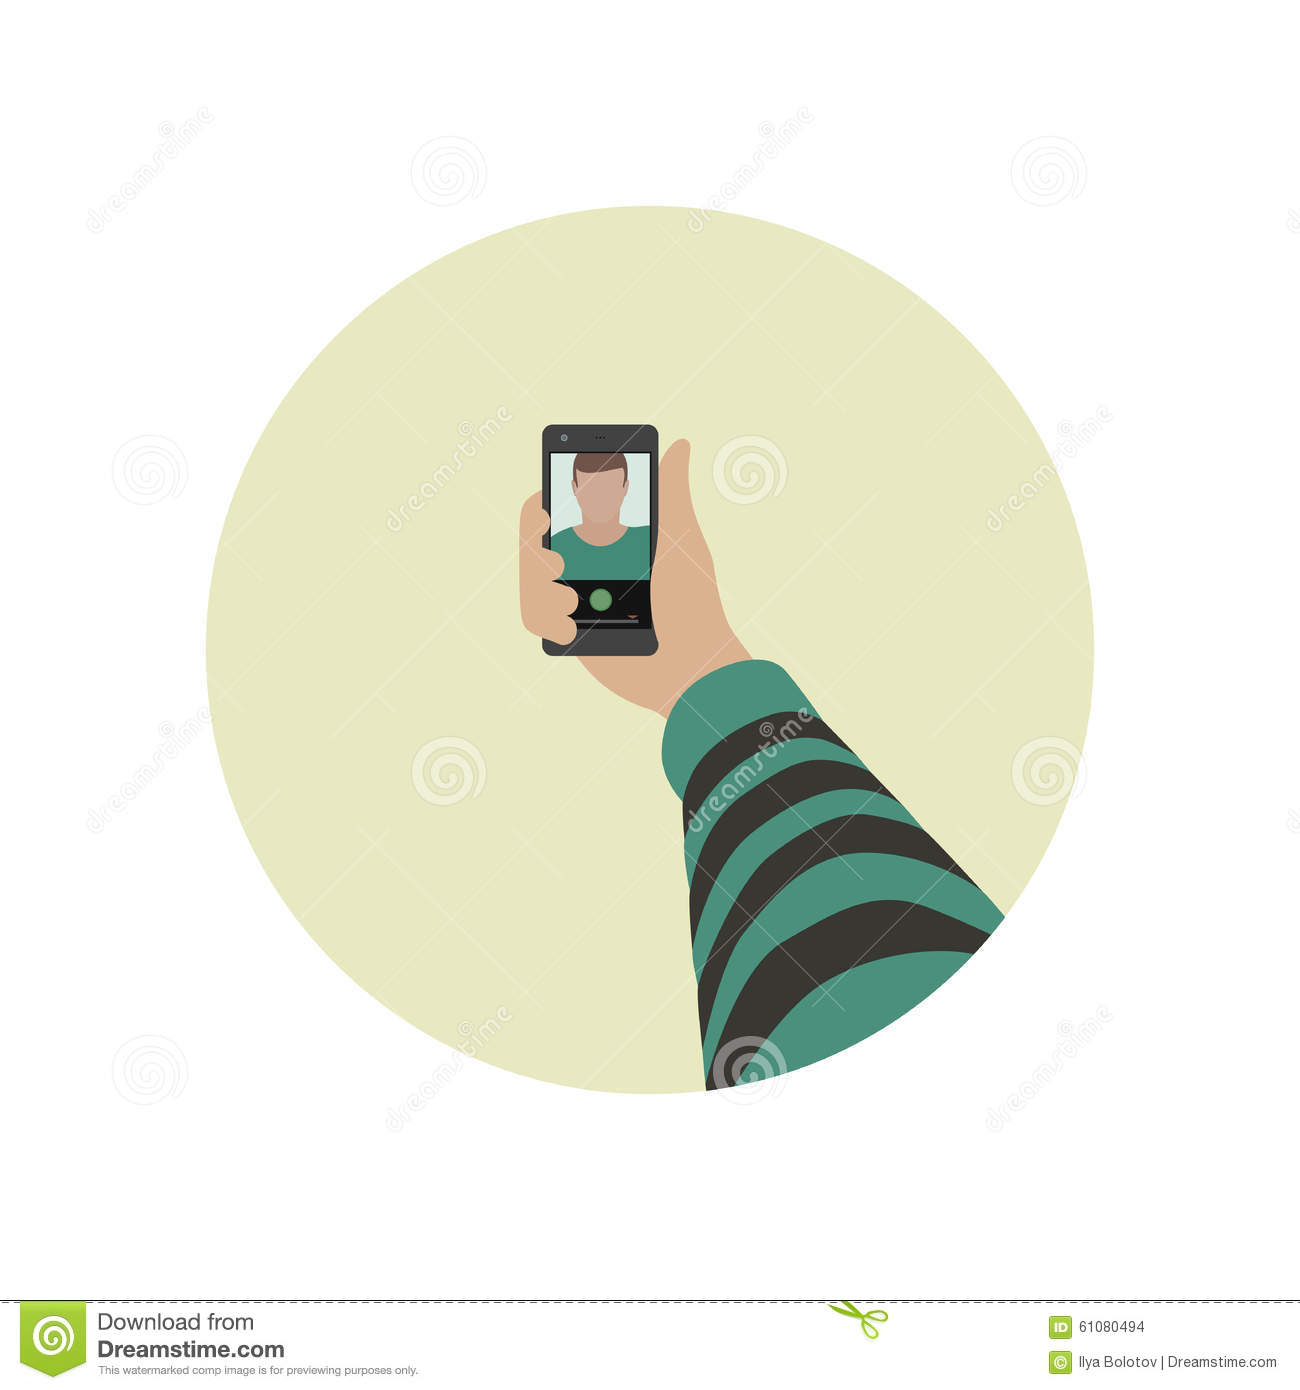 Selfie flat icon. Simple vector illustration of taking selfie photo on ...